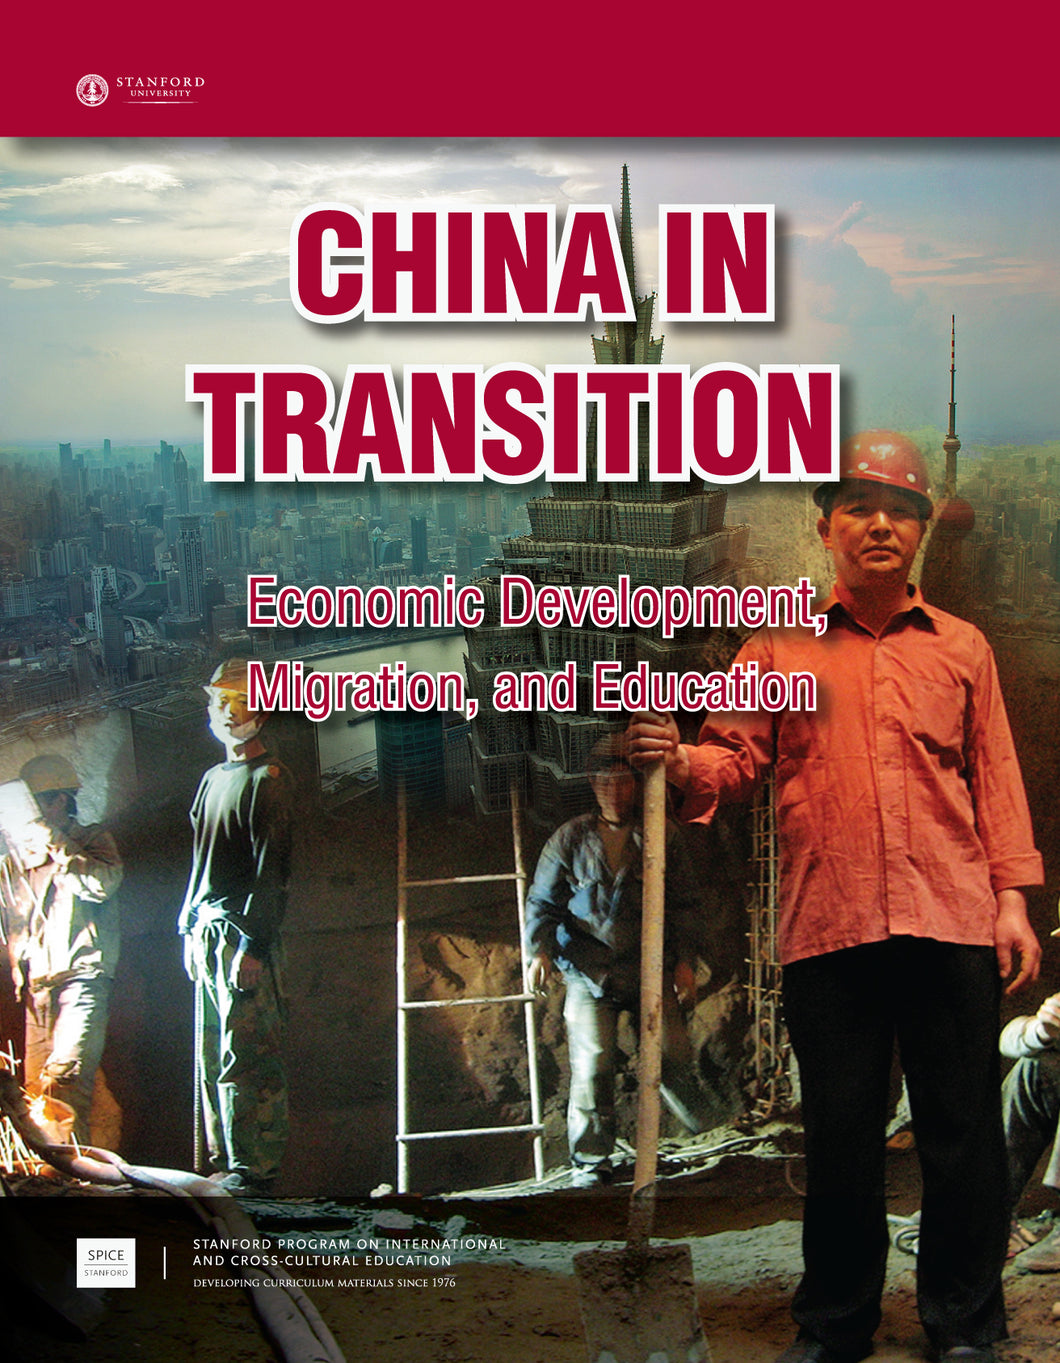 China in Transition: Economic Development, Migration, and Education